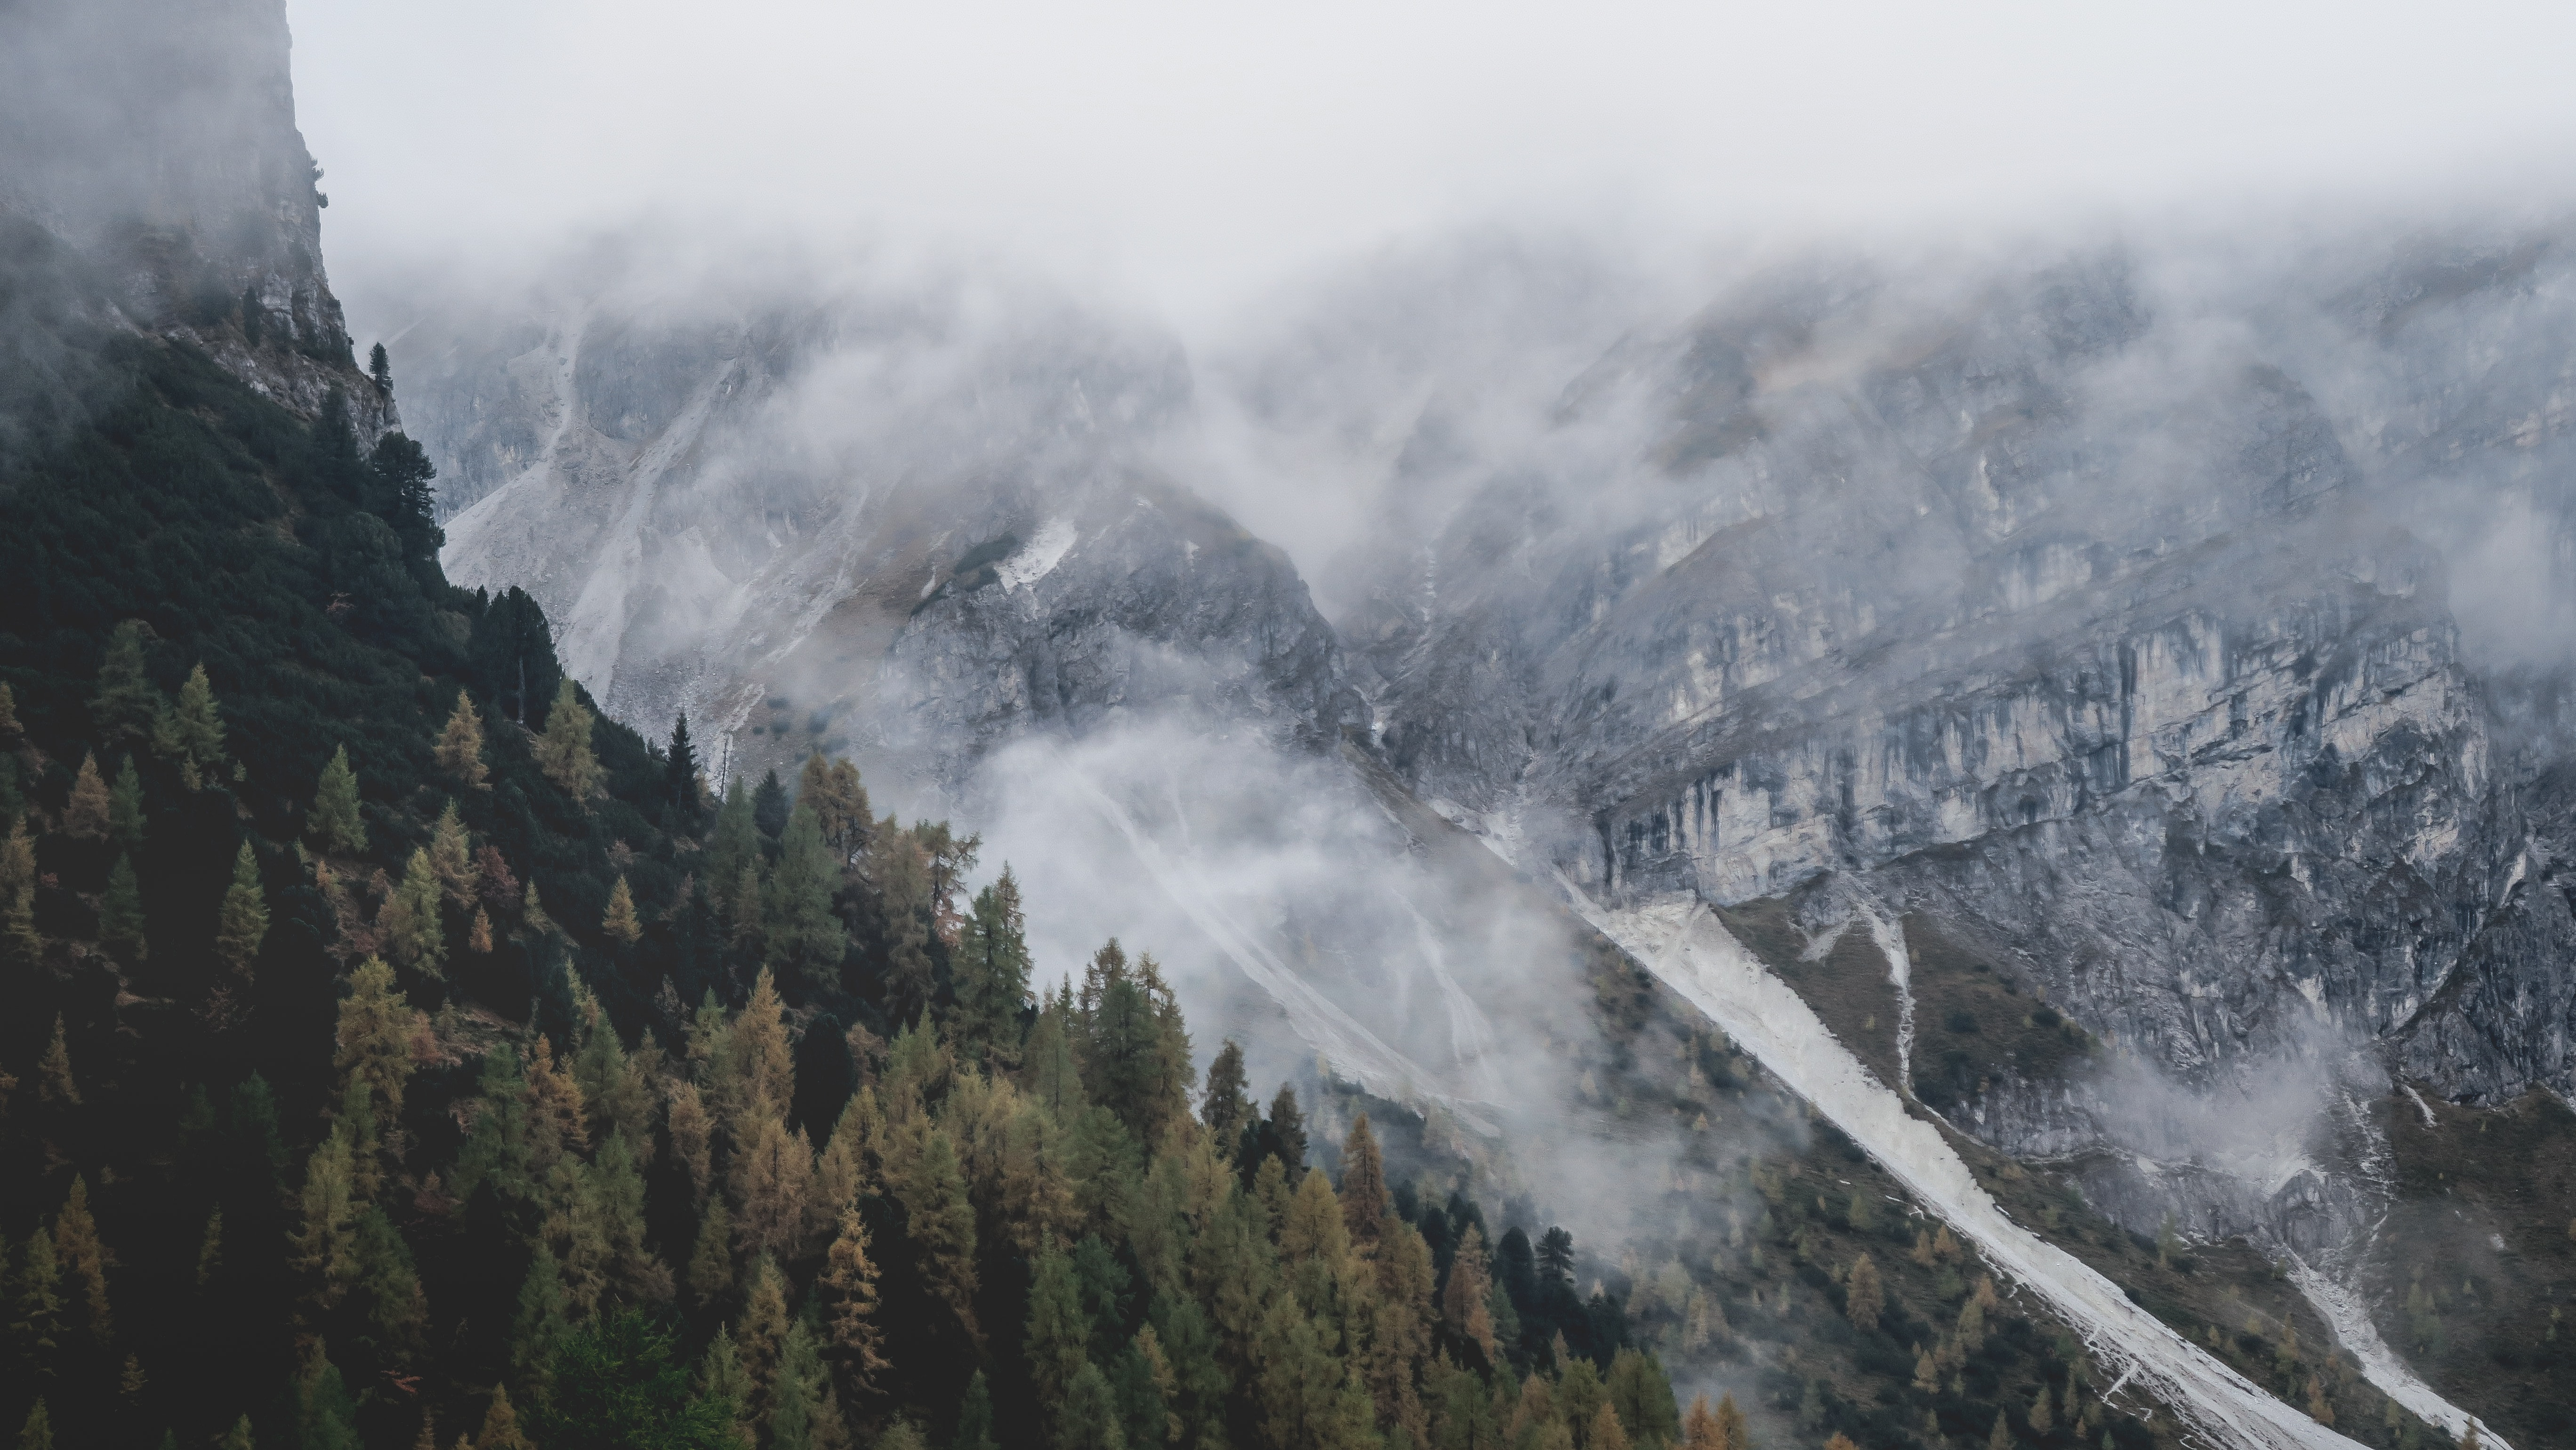 A fog descending from jagged mountain tops onto a forest in Axamer Lizum